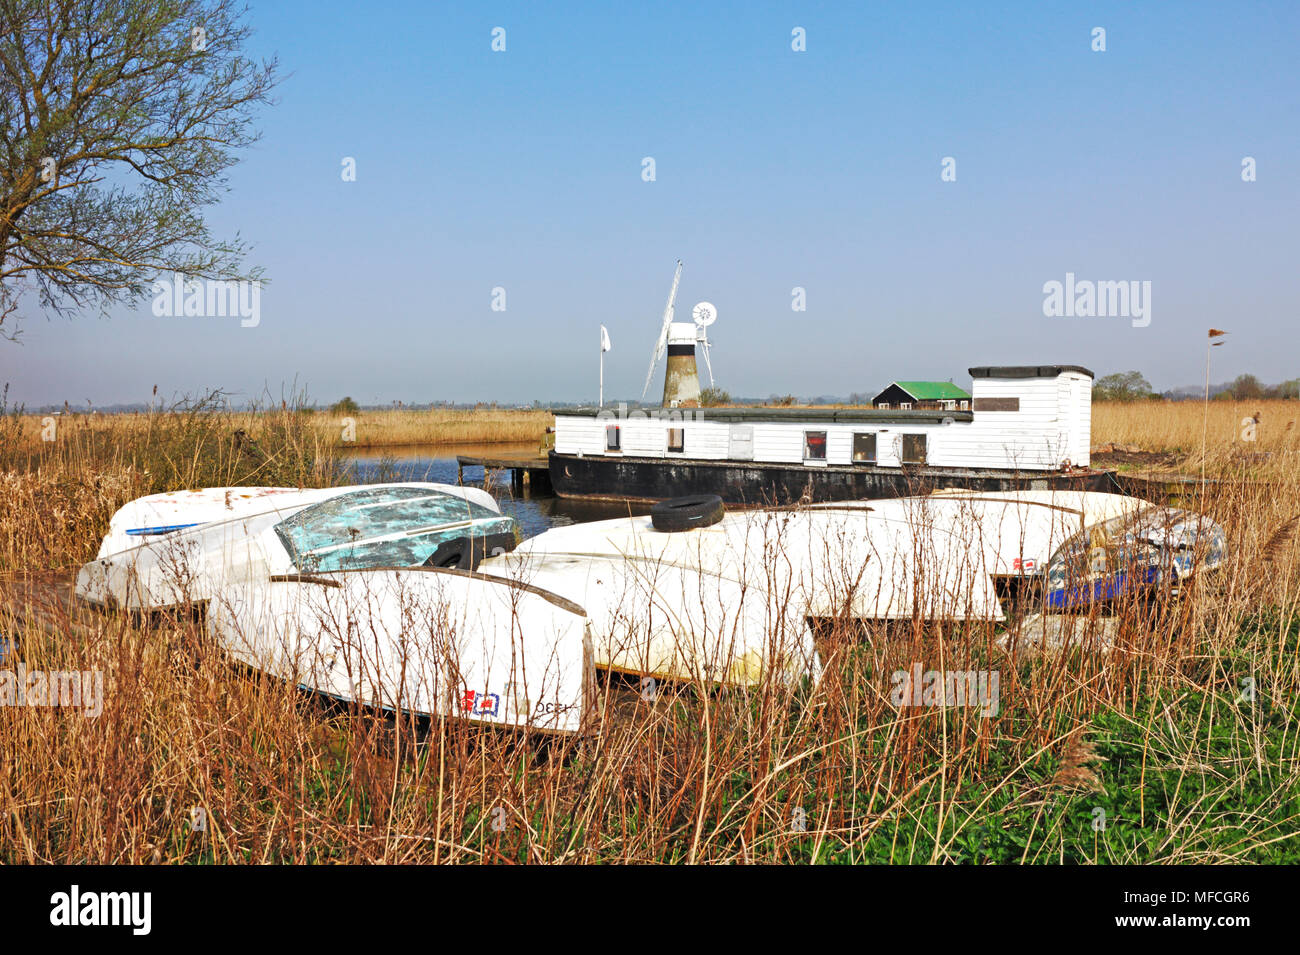 A group of upturned dinghies by the River Thurne on the Norfolk Broads at Thurne, Norfolk, England, United Kingdom, Europe. - Stock Image